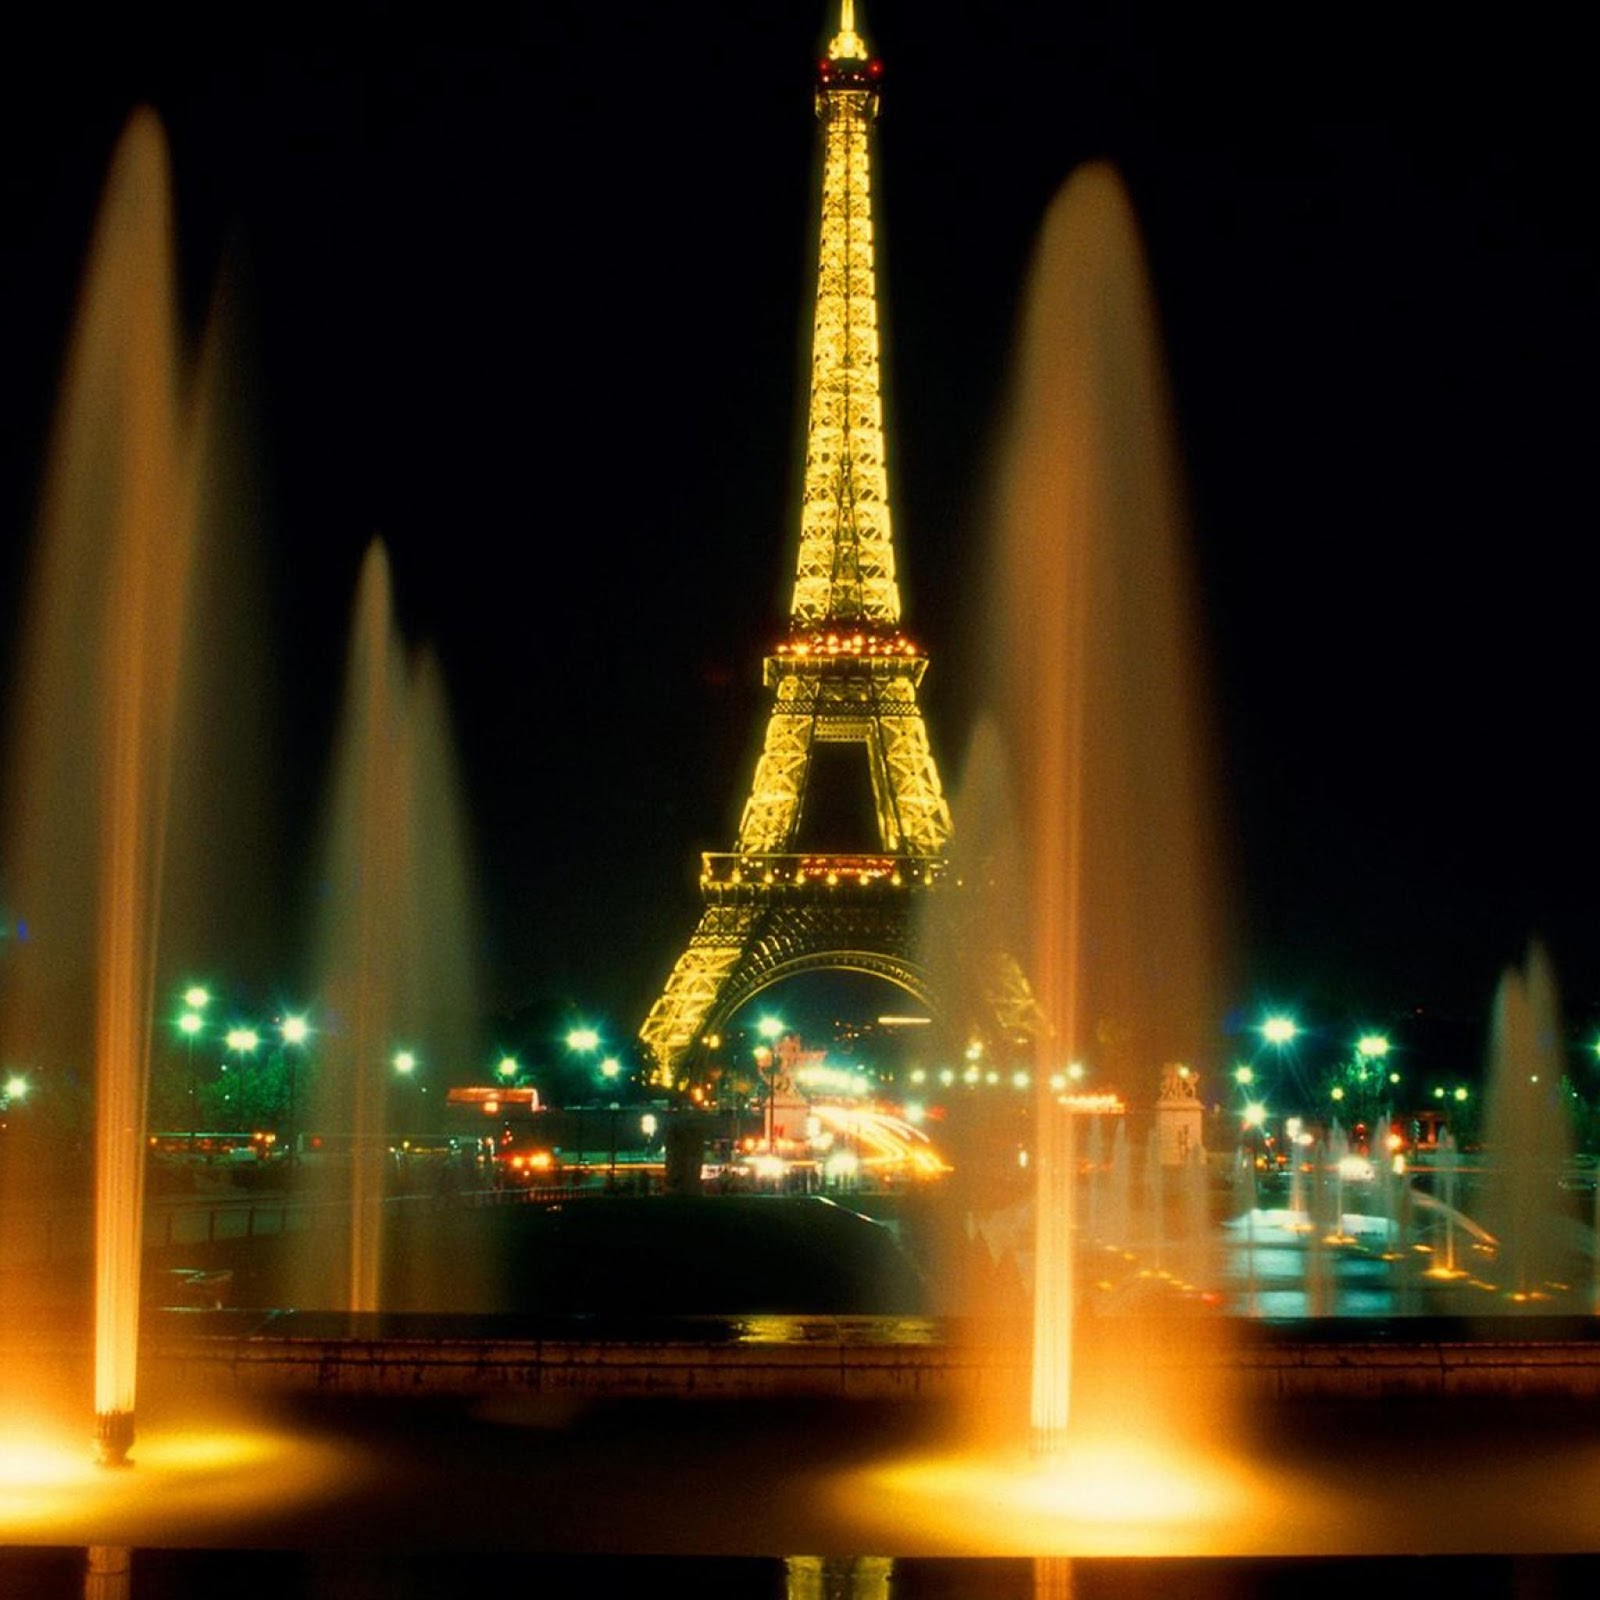 Girl Hd Desktop Wallpaper Paris Paris Eiffel Tower At Night